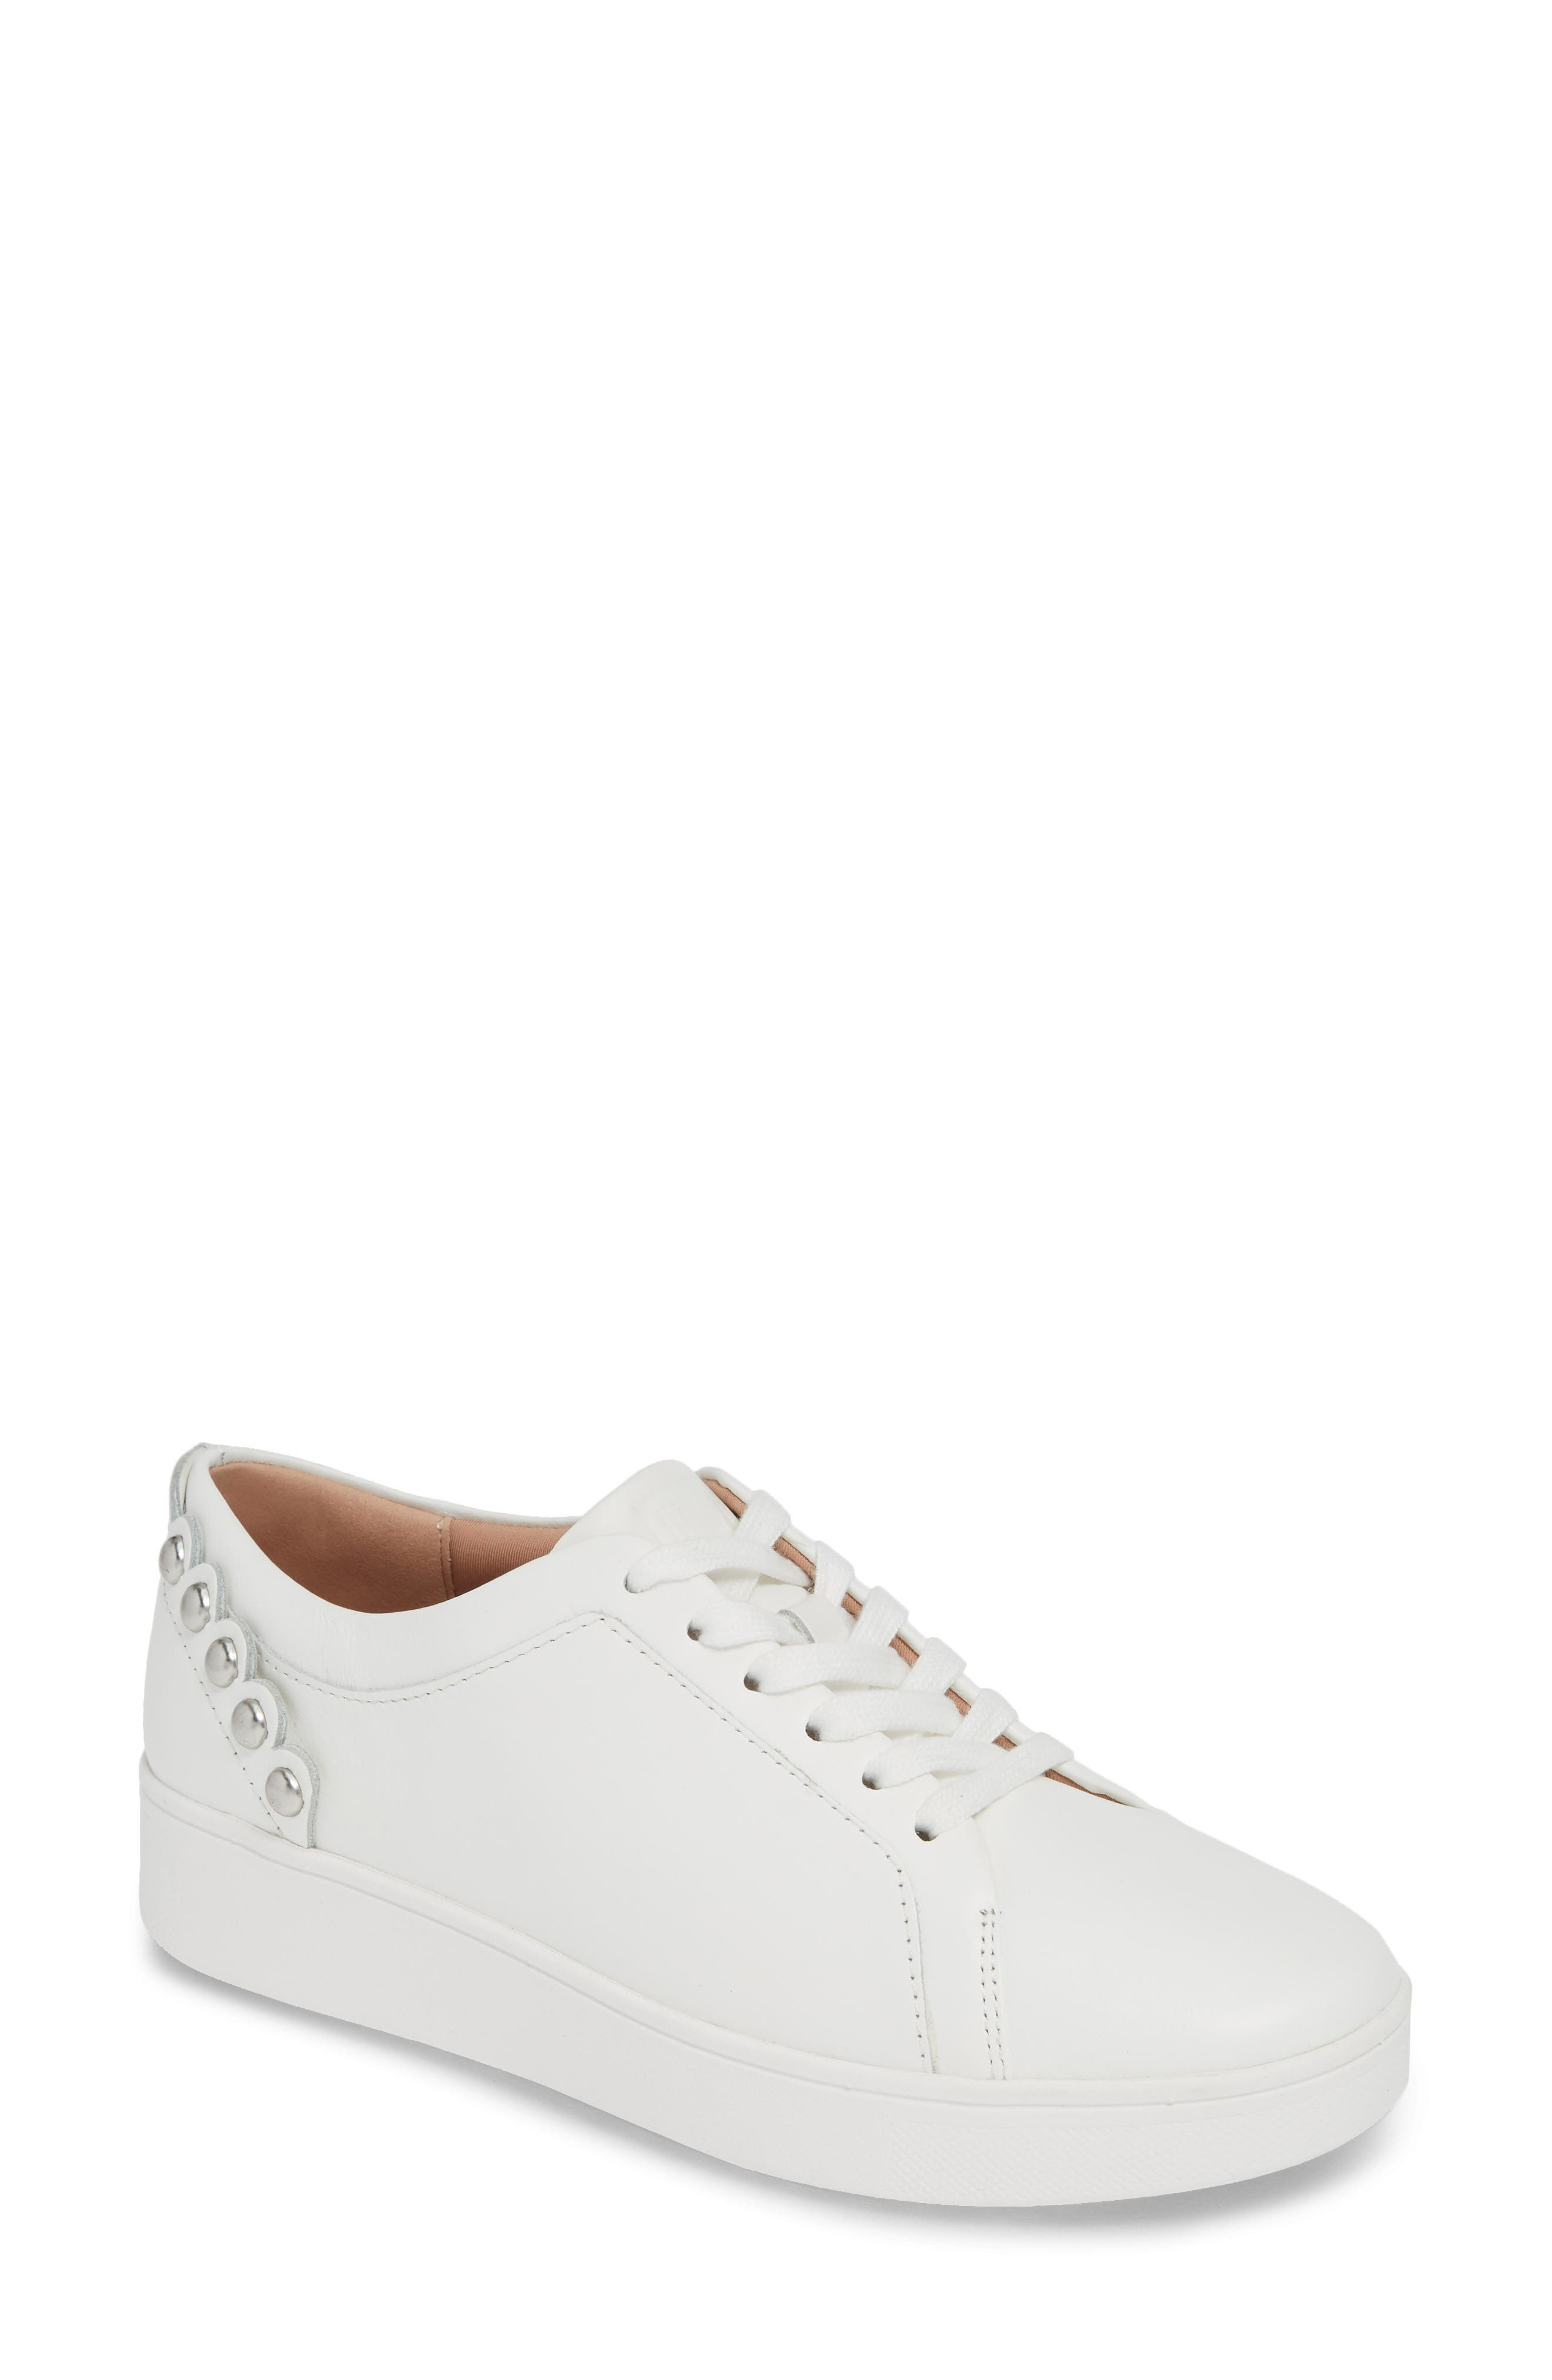 FITFLOP Rally Studded Sneaker, Main, color, URBAN WHITE LEATHER